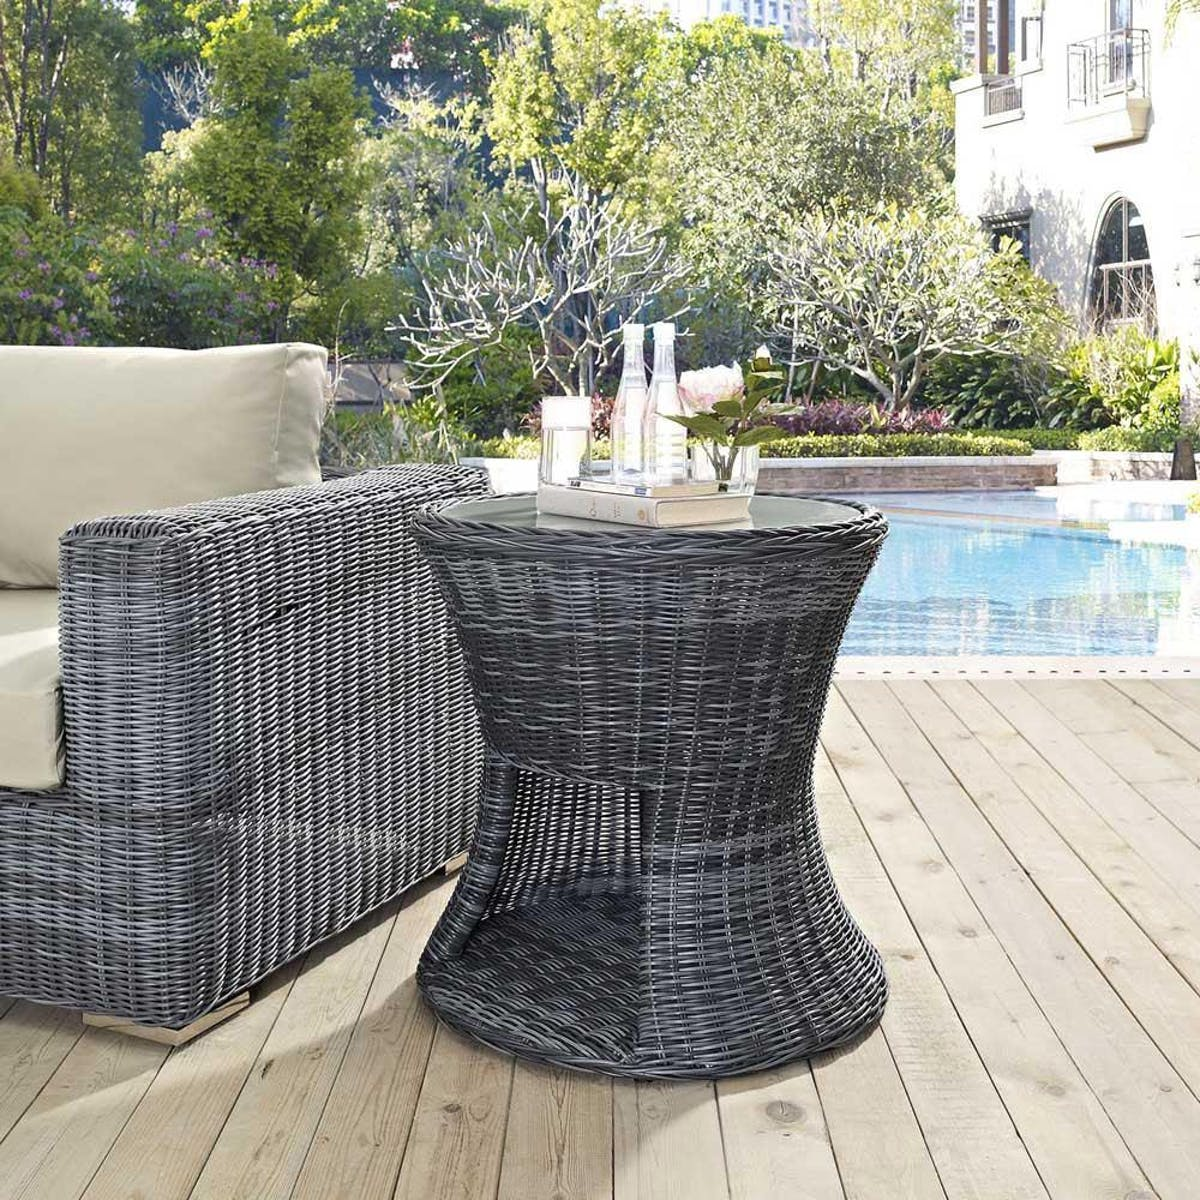 modway summon outdoor patio side table gray modish eei gry ryobi knoll changing dimensions door designs for rooms large pub mission style end tables hampton bay wicker furniture